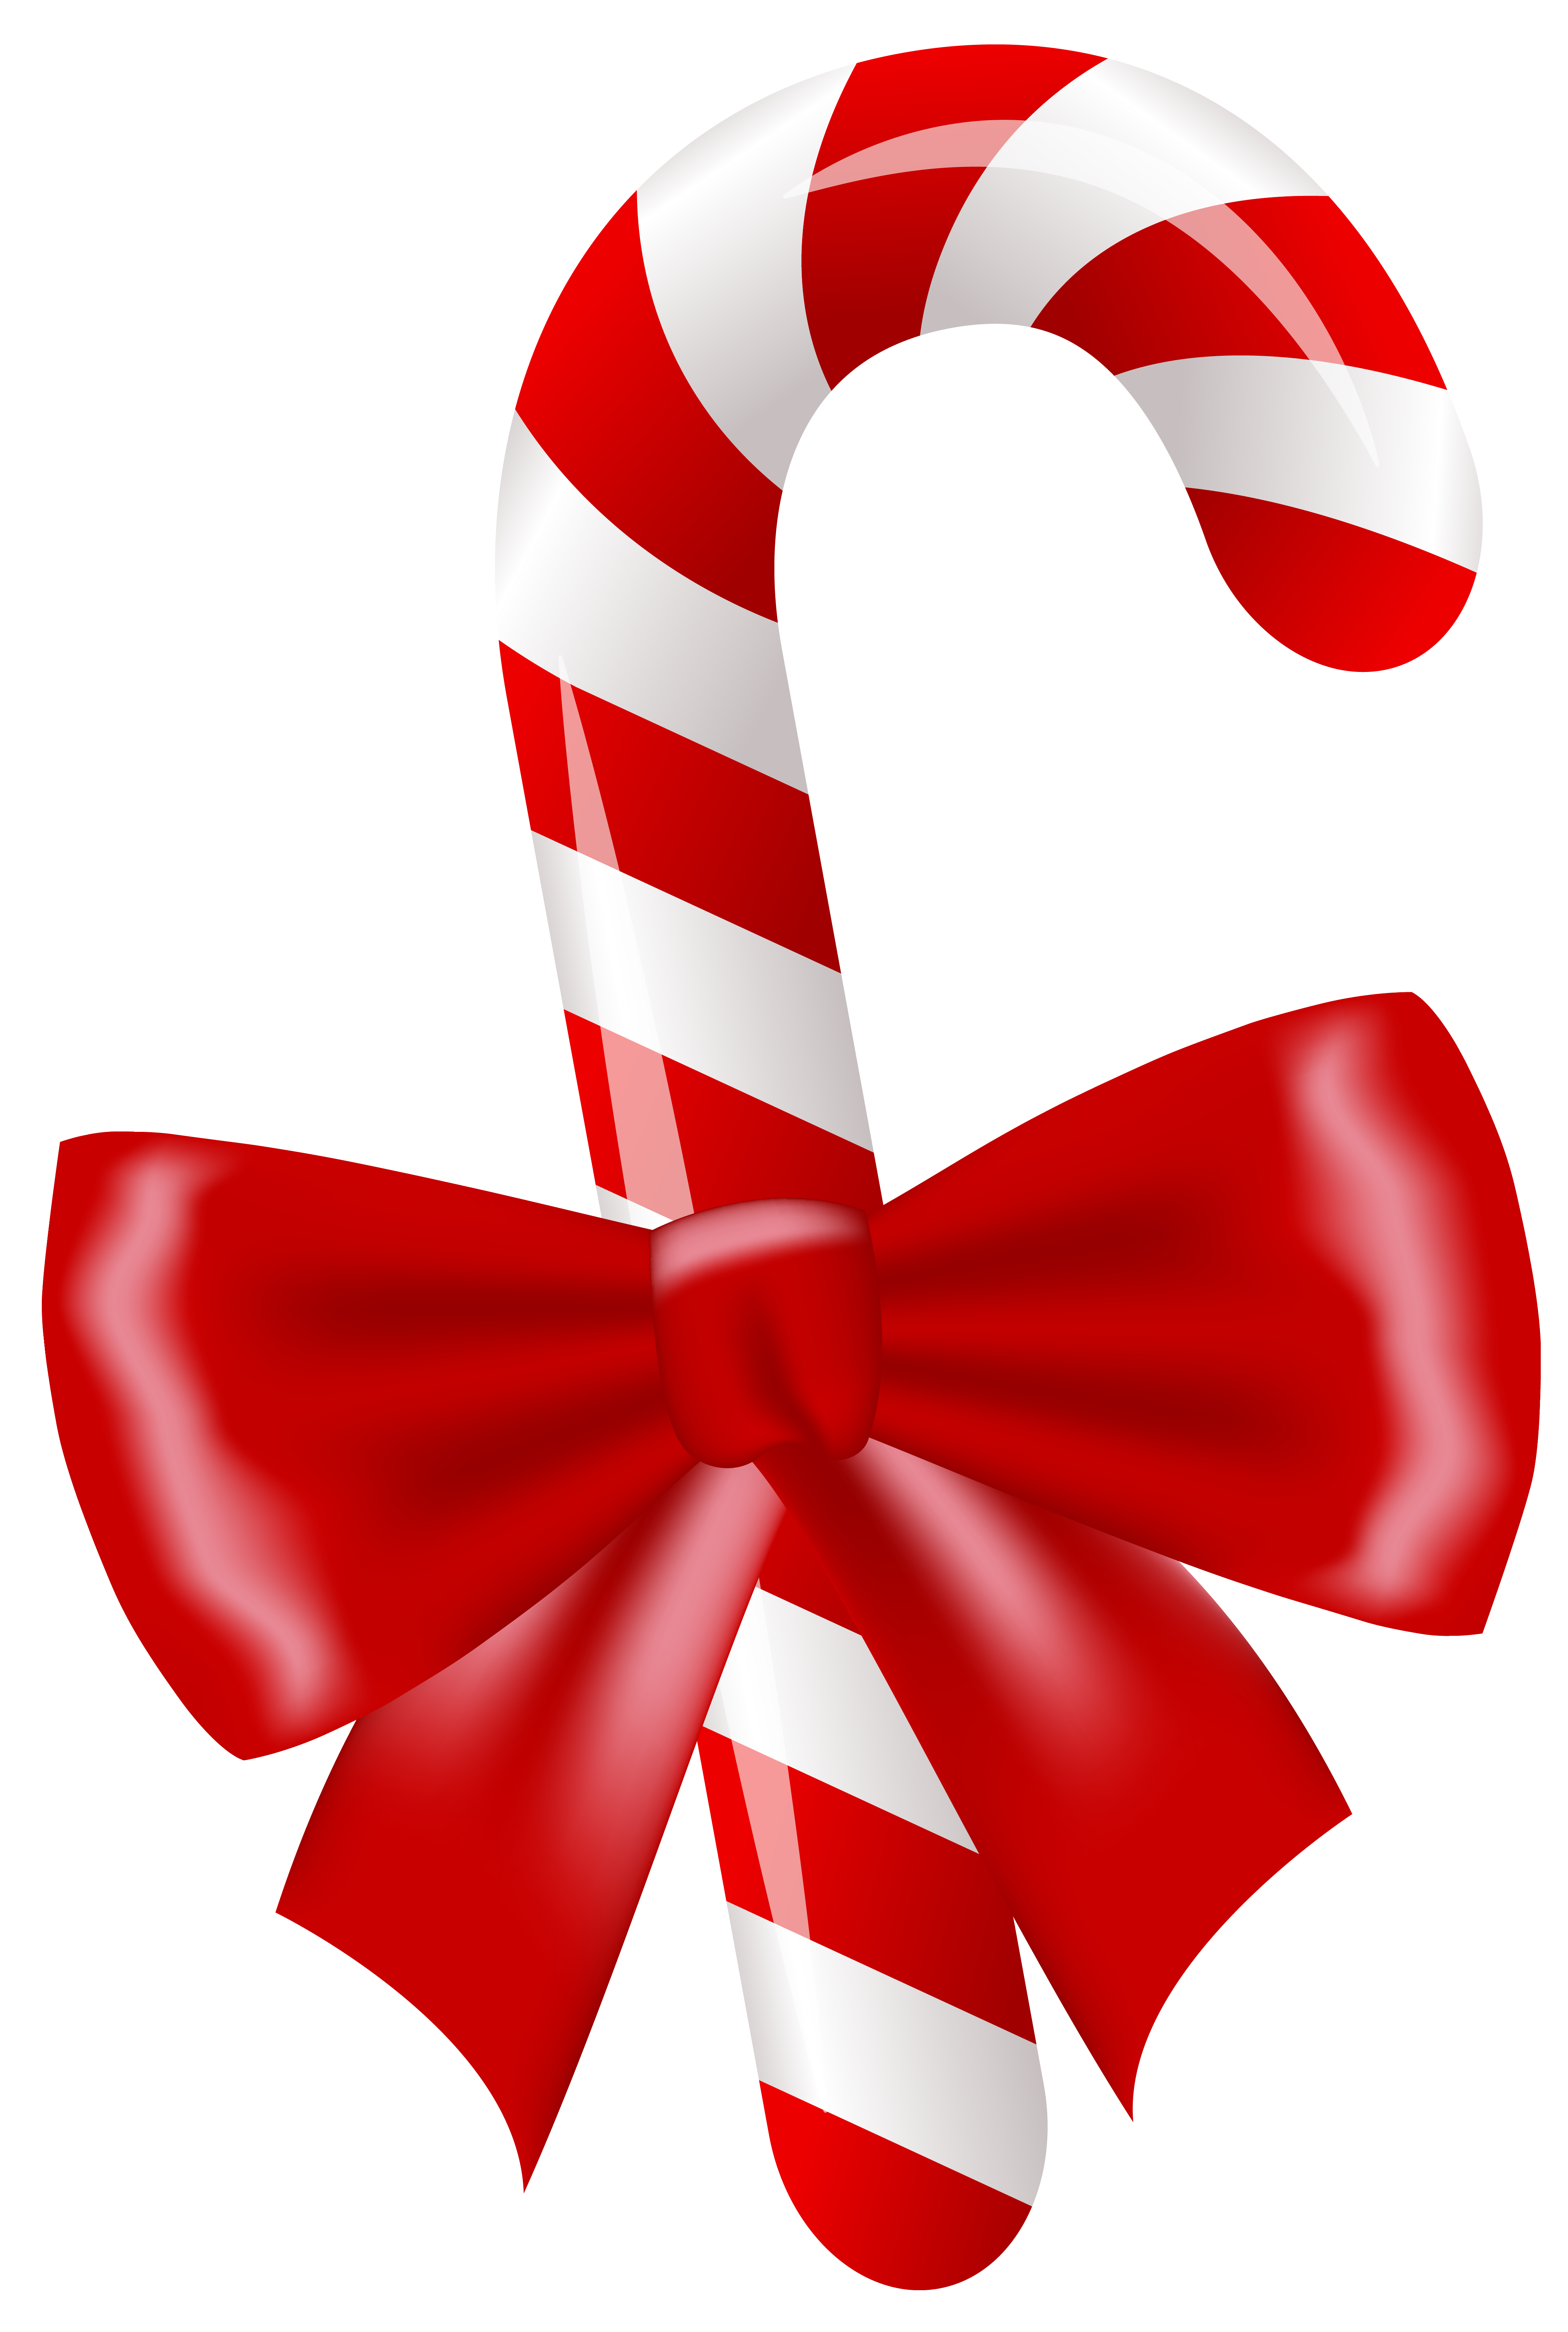 Christmas candy cane png. Clipart halloween sweet